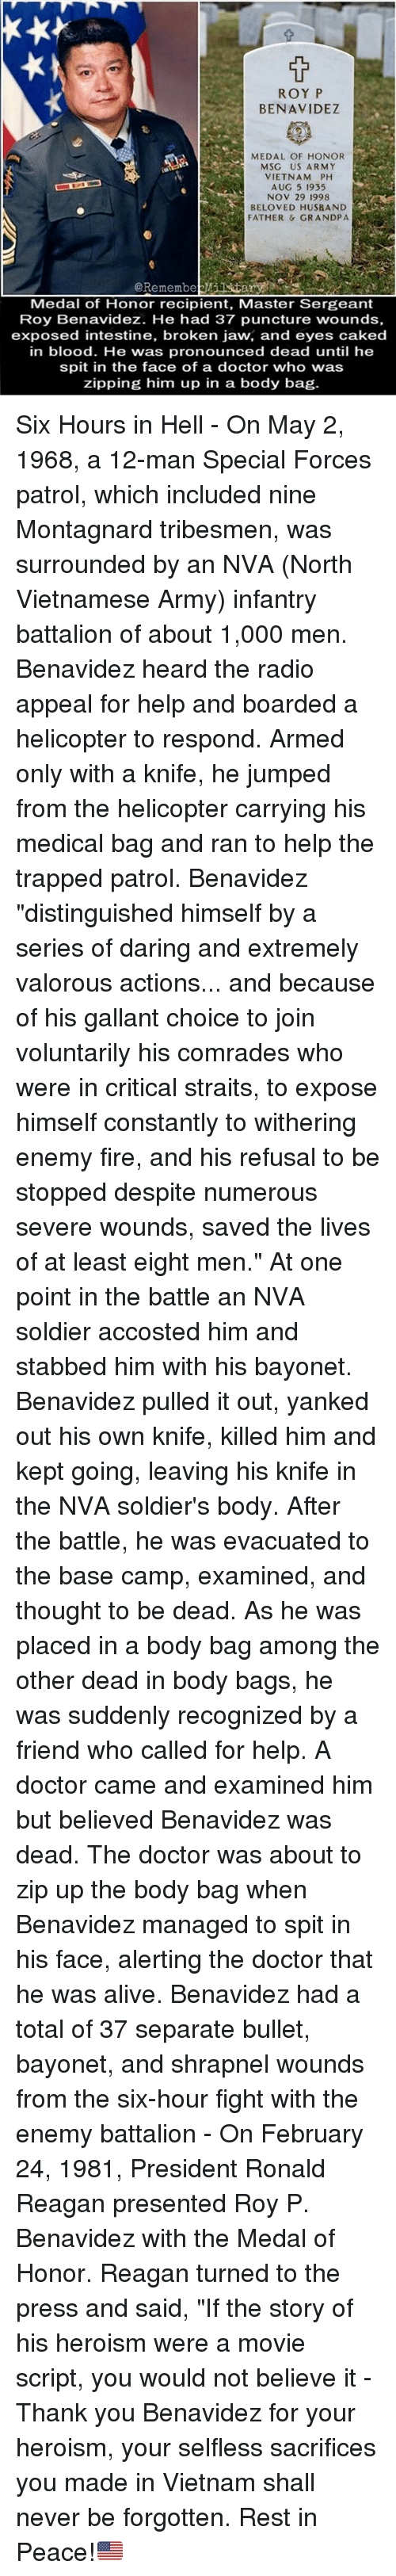 "Alive, Doctor, and Fire: ROY P  BENAVIDEZ  MEDAL OF HONOR  MSG US ARMY  VIETNAM PH  AUG 5 1935  NOV 29 1998  BELOVED HUSRAND  FATHER&GRANDPA  @Remembebary  Medal of Honor recipient, Master Sergeant  Roy Benavidez. He had 37 puncture wounds,  exposed intestine, broken jaw, and eyes caked  in blood. He was pronounced dead until he  spit in the face of a doctor who was  zipping him up in a body bag Six Hours in Hell - On May 2, 1968, a 12-man Special Forces patrol, which included nine Montagnard tribesmen, was surrounded by an NVA (North Vietnamese Army) infantry battalion of about 1,000 men. Benavidez heard the radio appeal for help and boarded a helicopter to respond. Armed only with a knife, he jumped from the helicopter carrying his medical bag and ran to help the trapped patrol. Benavidez ""distinguished himself by a series of daring and extremely valorous actions... and because of his gallant choice to join voluntarily his comrades who were in critical straits, to expose himself constantly to withering enemy fire, and his refusal to be stopped despite numerous severe wounds, saved the lives of at least eight men."" At one point in the battle an NVA soldier accosted him and stabbed him with his bayonet. Benavidez pulled it out, yanked out his own knife, killed him and kept going, leaving his knife in the NVA soldier's body. After the battle, he was evacuated to the base camp, examined, and thought to be dead. As he was placed in a body bag among the other dead in body bags, he was suddenly recognized by a friend who called for help. A doctor came and examined him but believed Benavidez was dead. The doctor was about to zip up the body bag when Benavidez managed to spit in his face, alerting the doctor that he was alive. Benavidez had a total of 37 separate bullet, bayonet, and shrapnel wounds from the six-hour fight with the enemy battalion - On February 24, 1981, President Ronald Reagan presented Roy P. Benavidez with the Medal of Honor. Reagan turned to the press and said, ""If the story of his heroism were a movie script, you would not believe it - Thank you Benavidez for your heroism, your selfless sacrifices you made in Vietnam shall never be forgotten. Rest in Peace!🇺🇸"